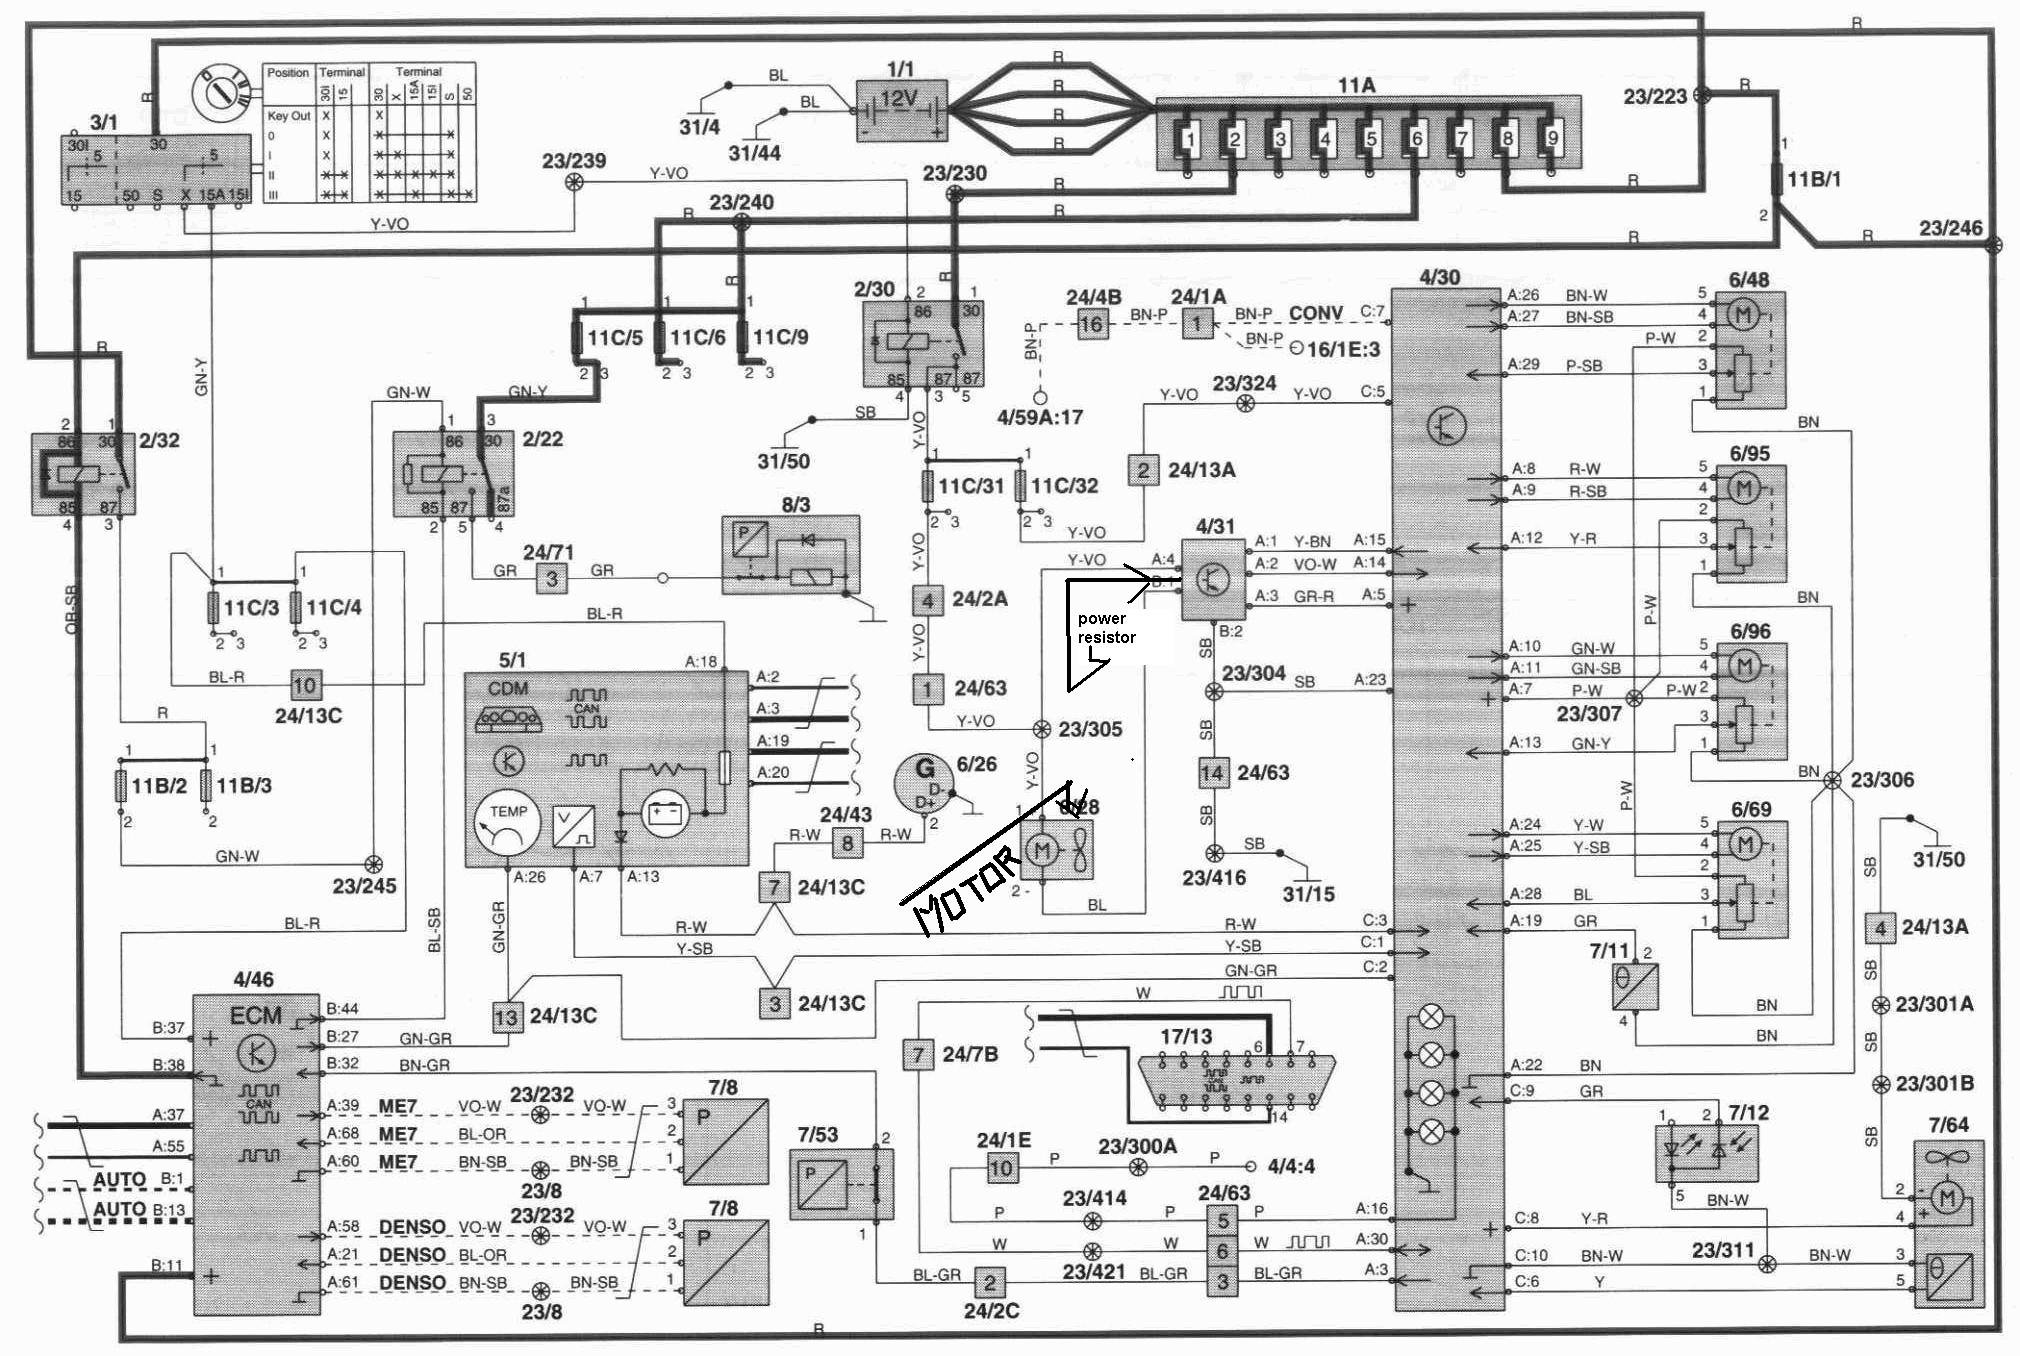 volvo climate control questions answered 1997 volvo wiring diagrams